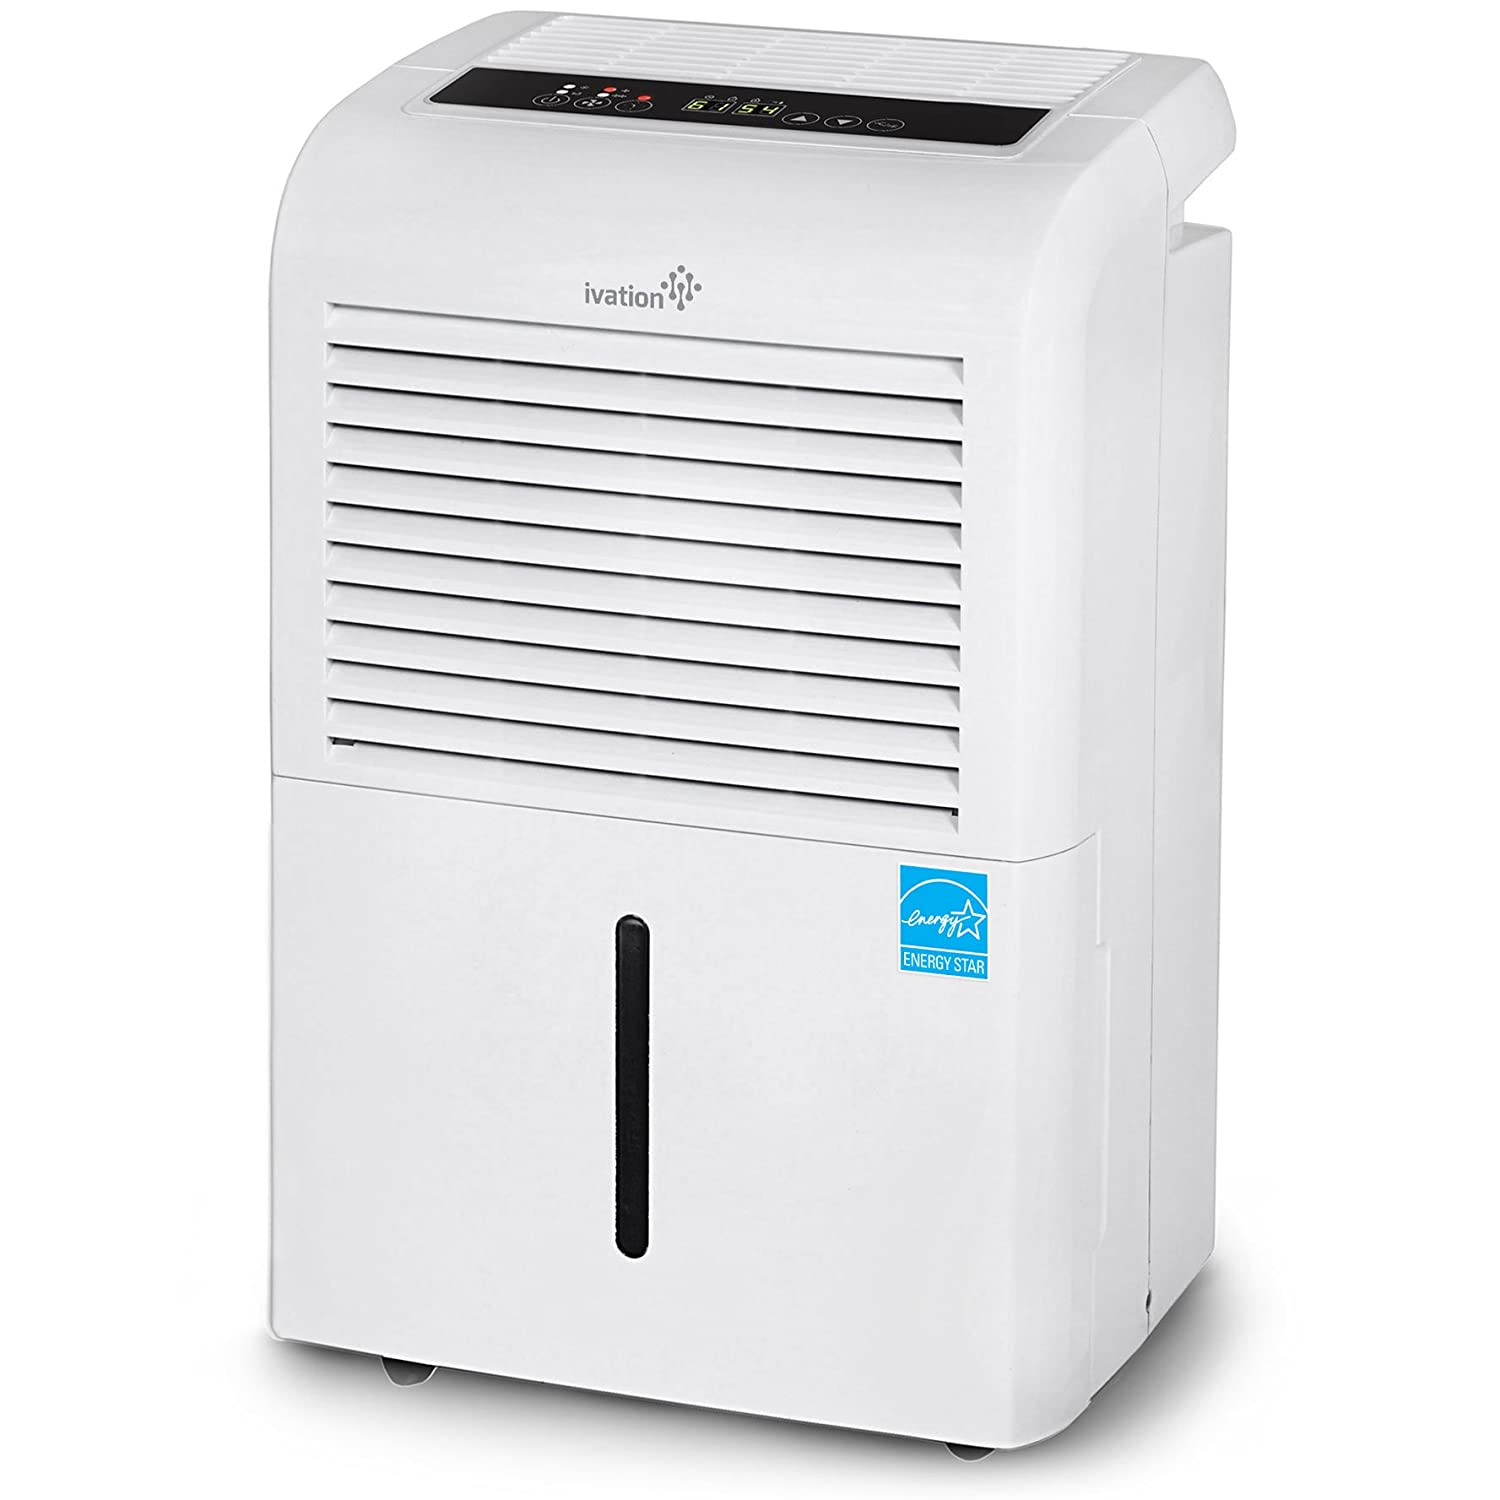 Ivation 70 Pint Energy Star Dehumidifier with Pump, Large Capacity Compressor for Spaces Up To 4,500 Sq Ft, Includes Programmable Humidity, Hose Connector, Auto Shutoff and Restart and Washable Filter IVADH70PWP2